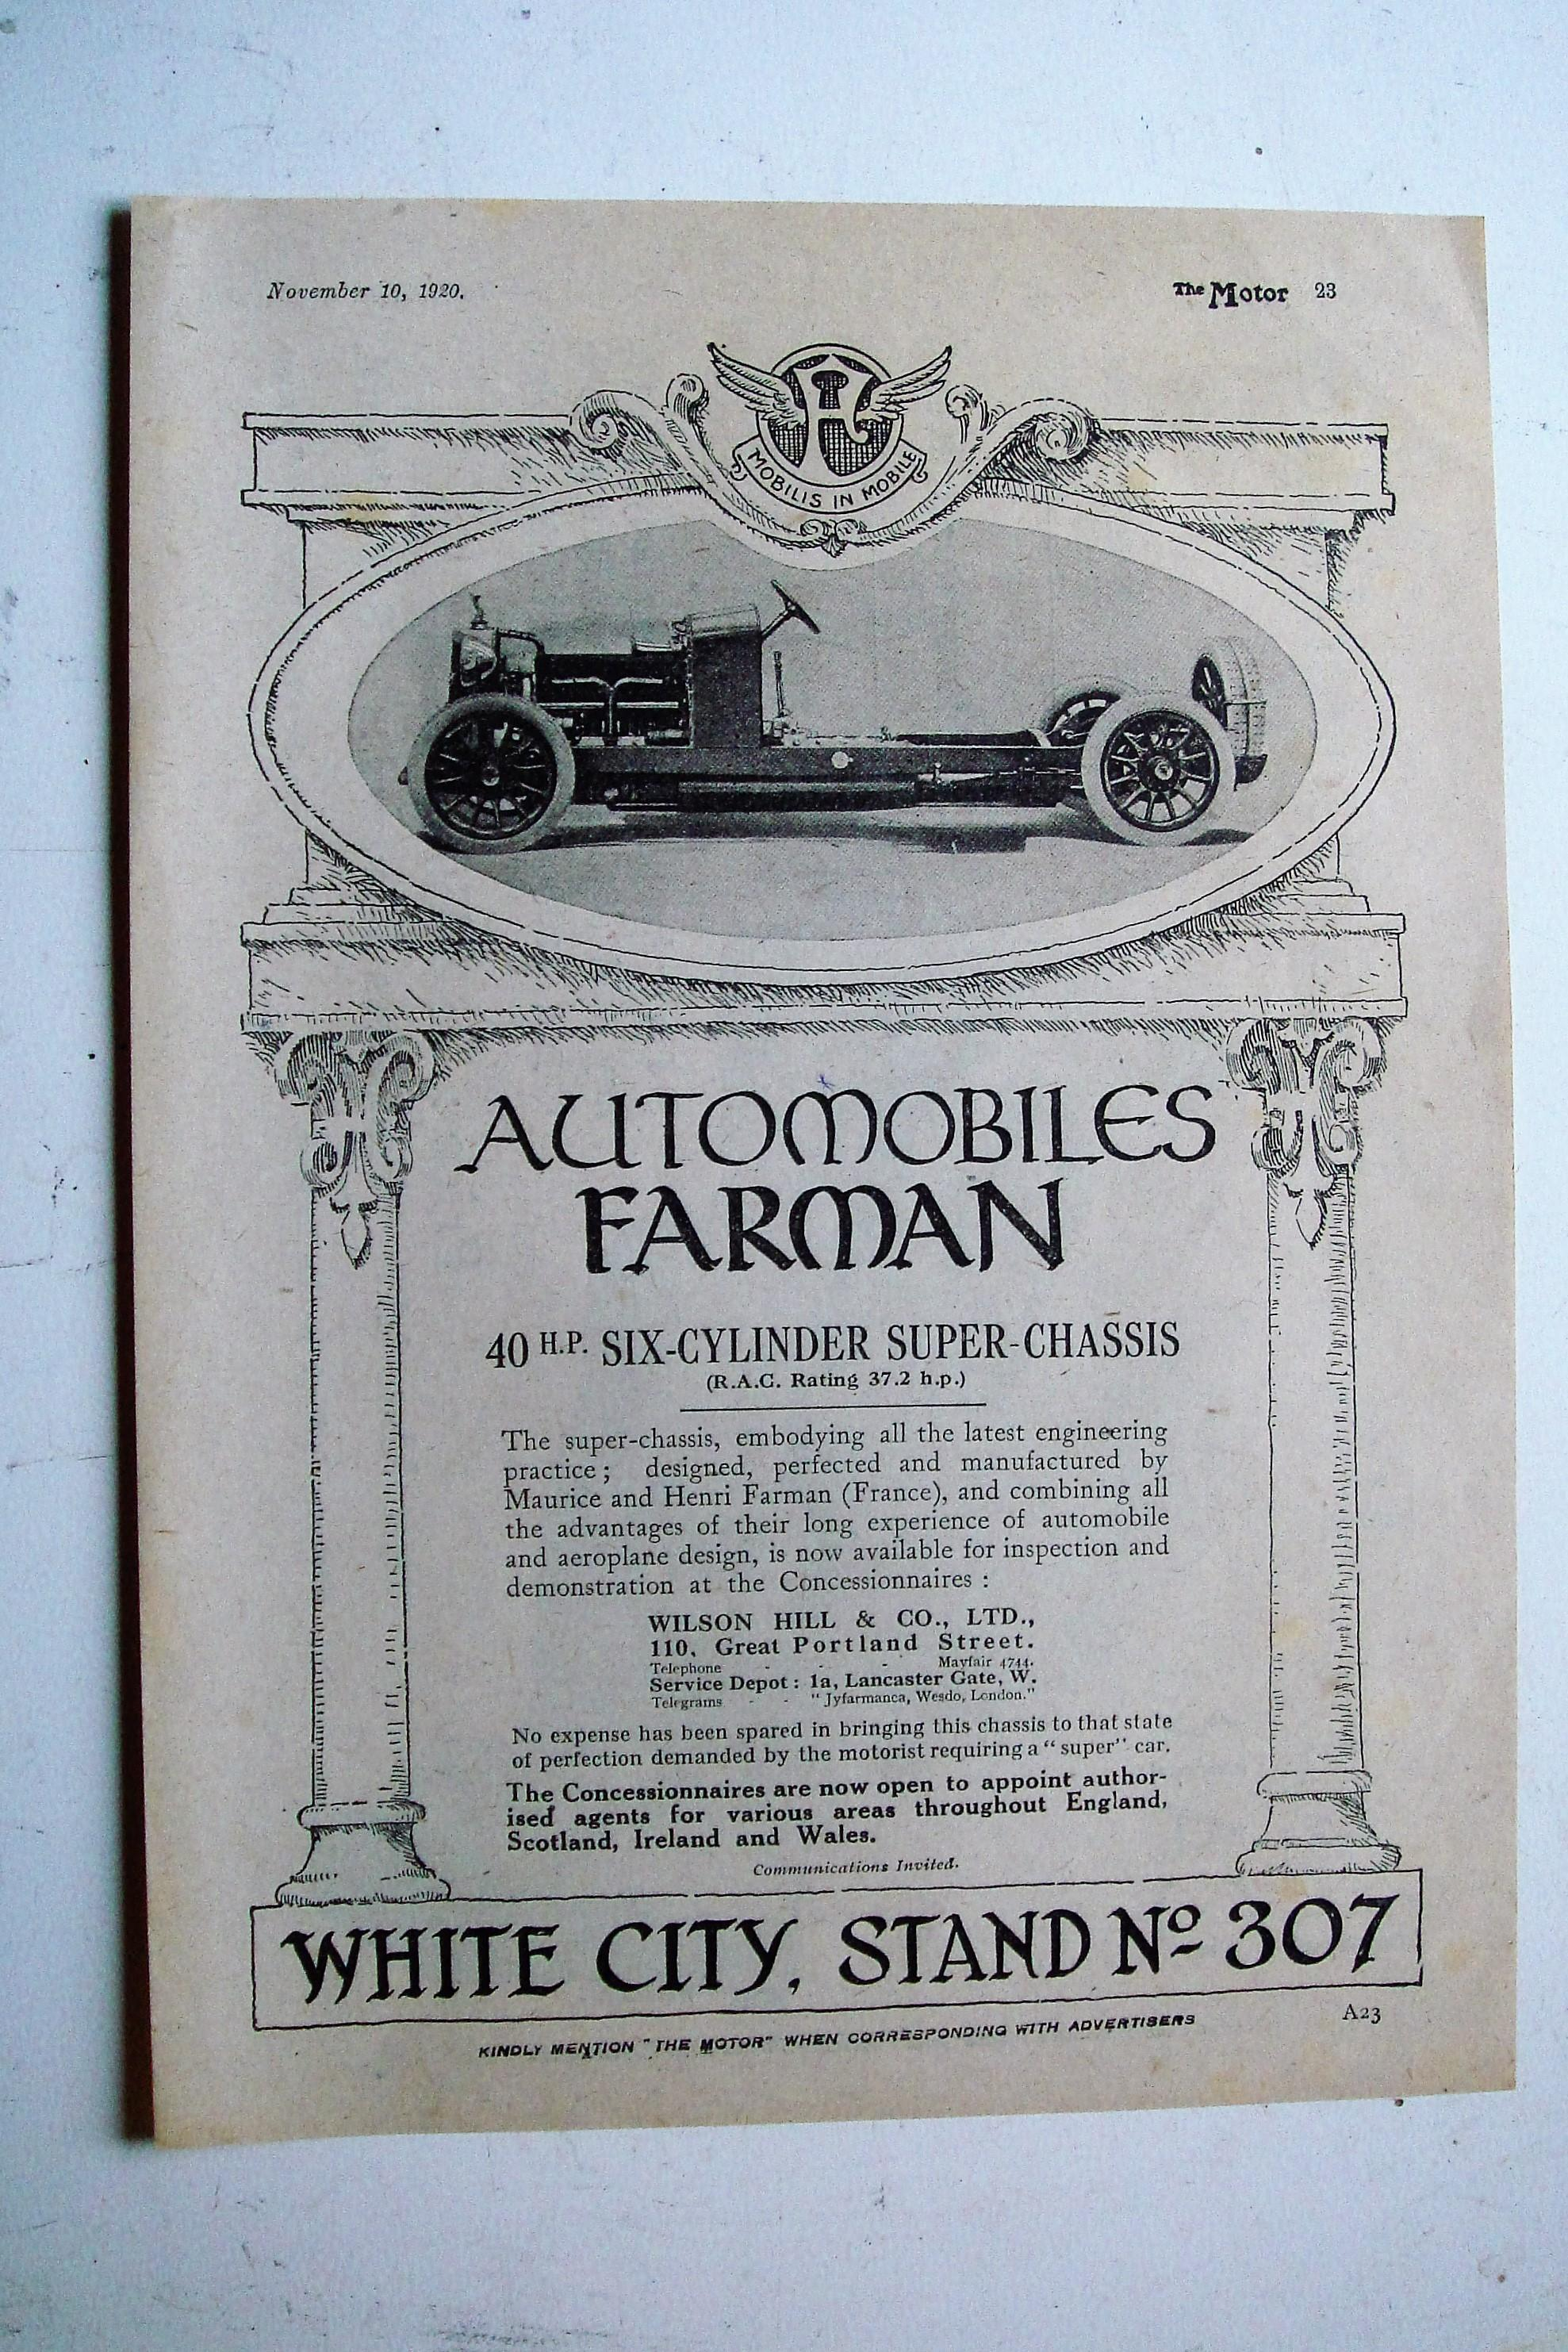 1920 Advertisement for Automobiles Farman 40 hp Six-Cylinder Super Chassis.